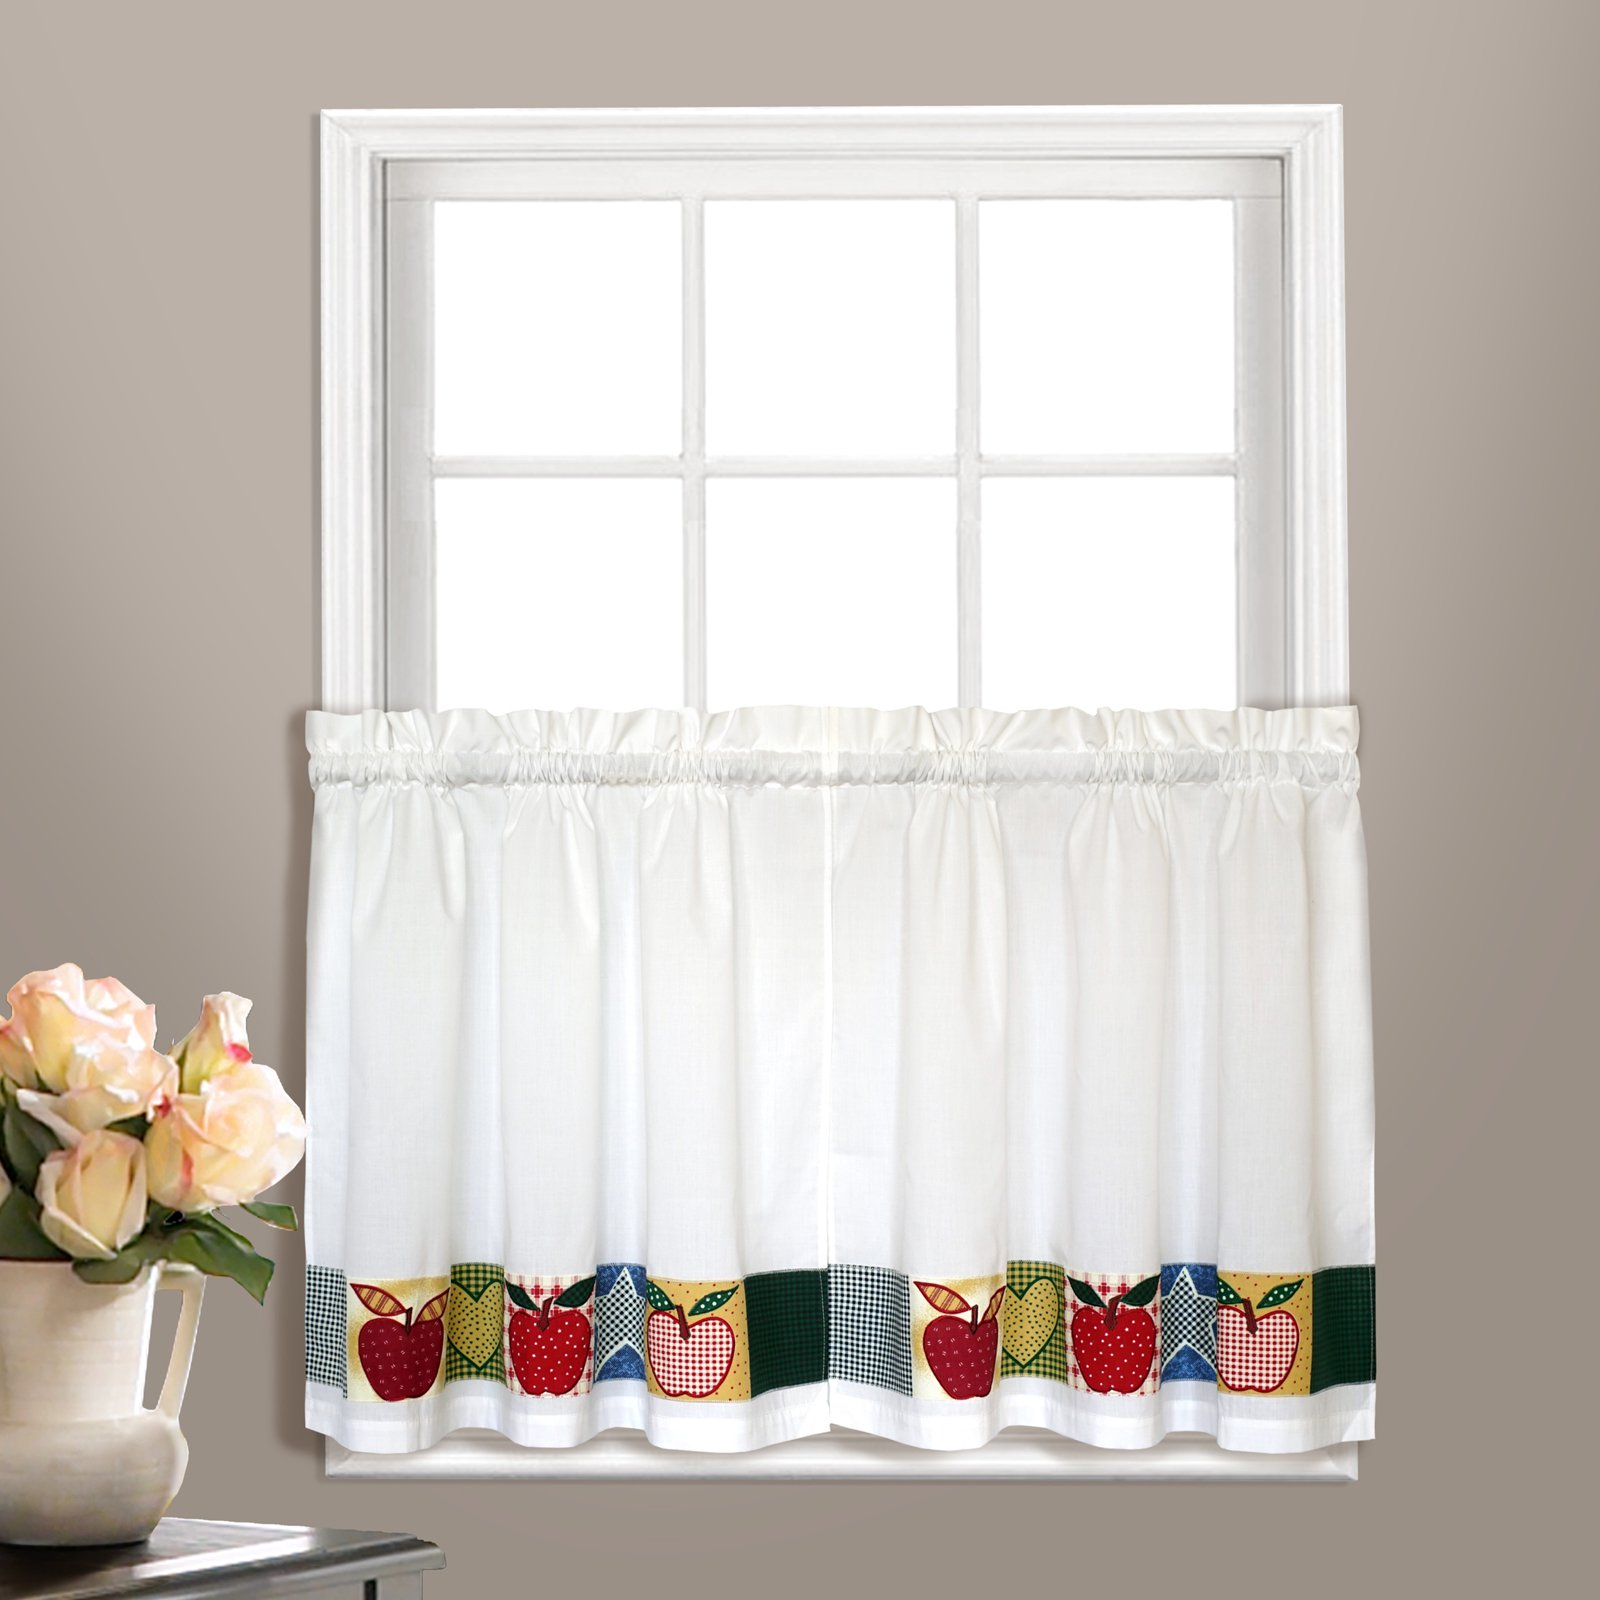 "APPLETON 55"" x 24"" WINDOW CURTAIN CAFE KITCHEN TIER PAIR Multi"